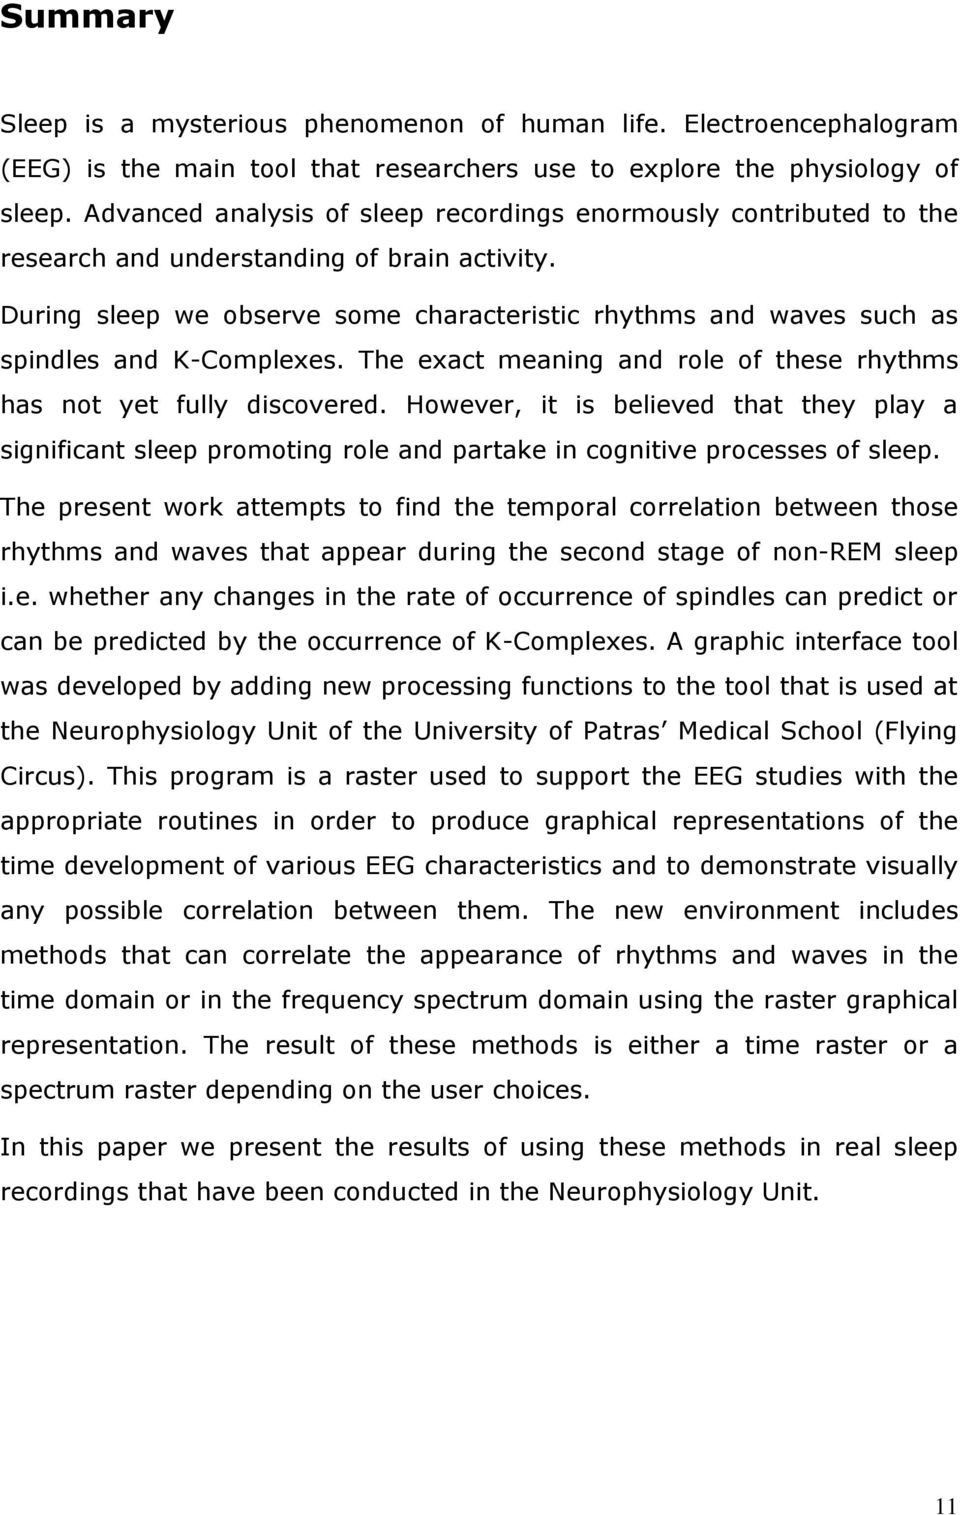 During sleep we observe some characteristic rhythms and waves such as spindles and K-Complexes. The exact meaning and role of these rhythms has not yet fully discovered.